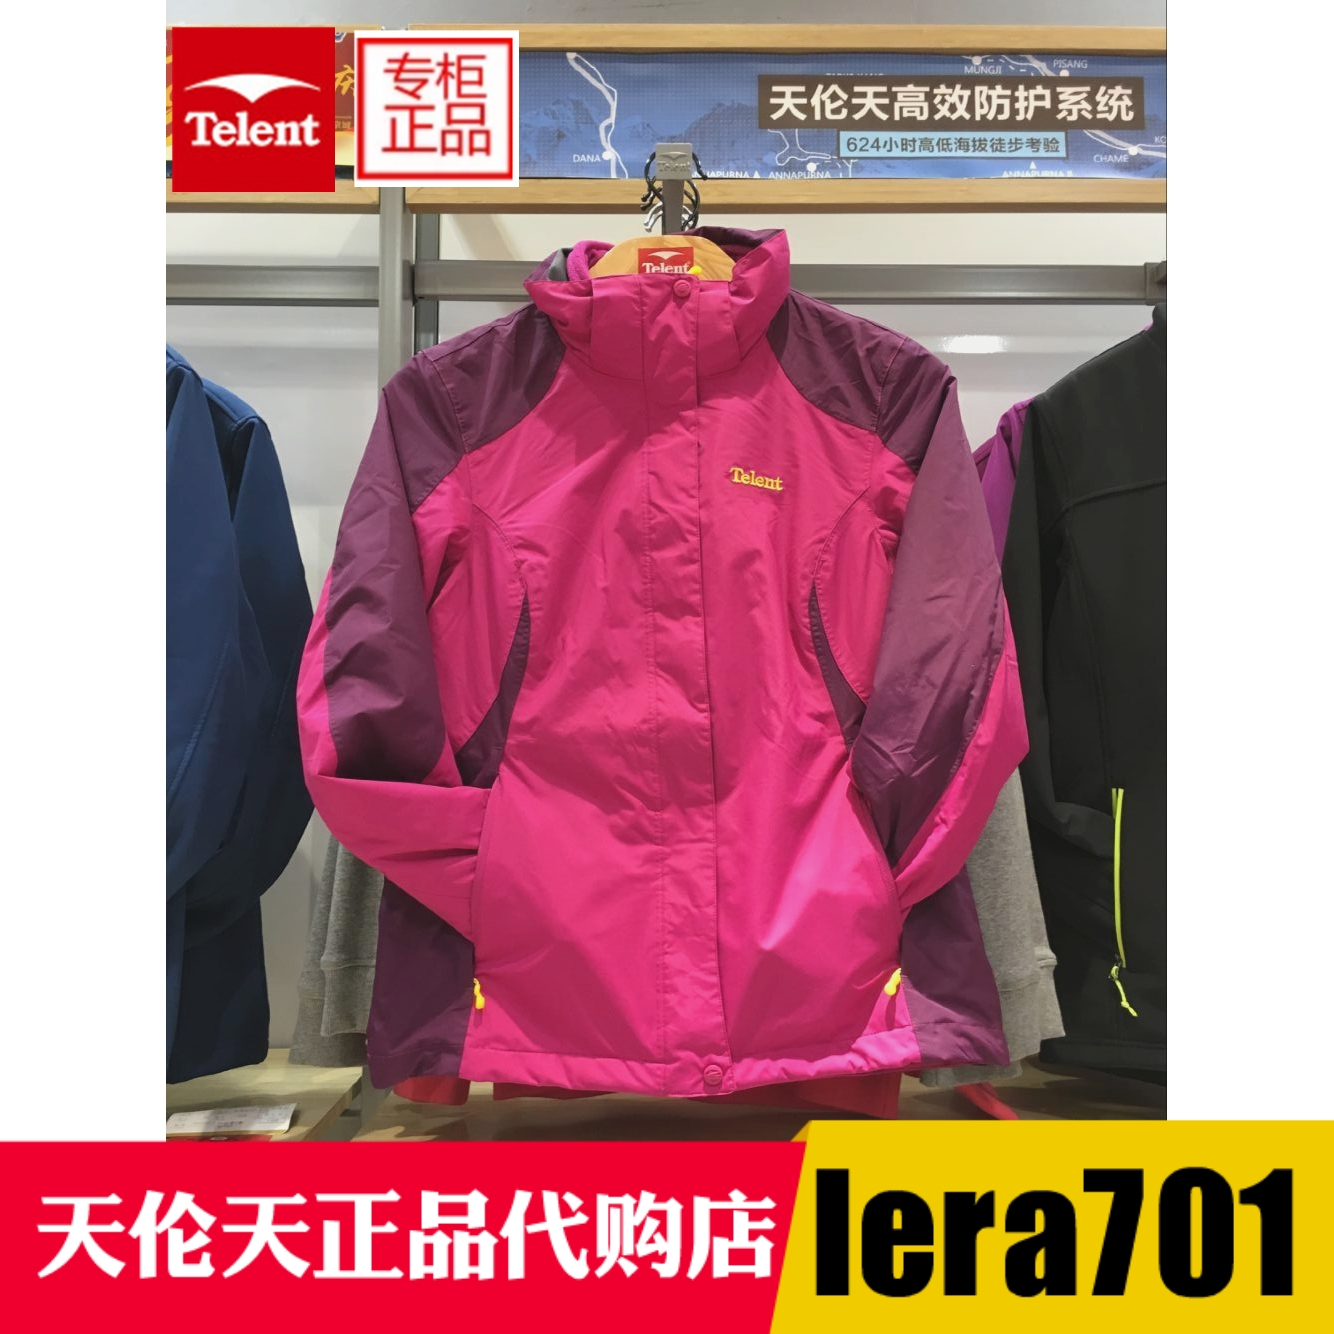 Telnt day day autumn and winter new female Jackets fleece clothes triple windproof warmth 664104 authentic